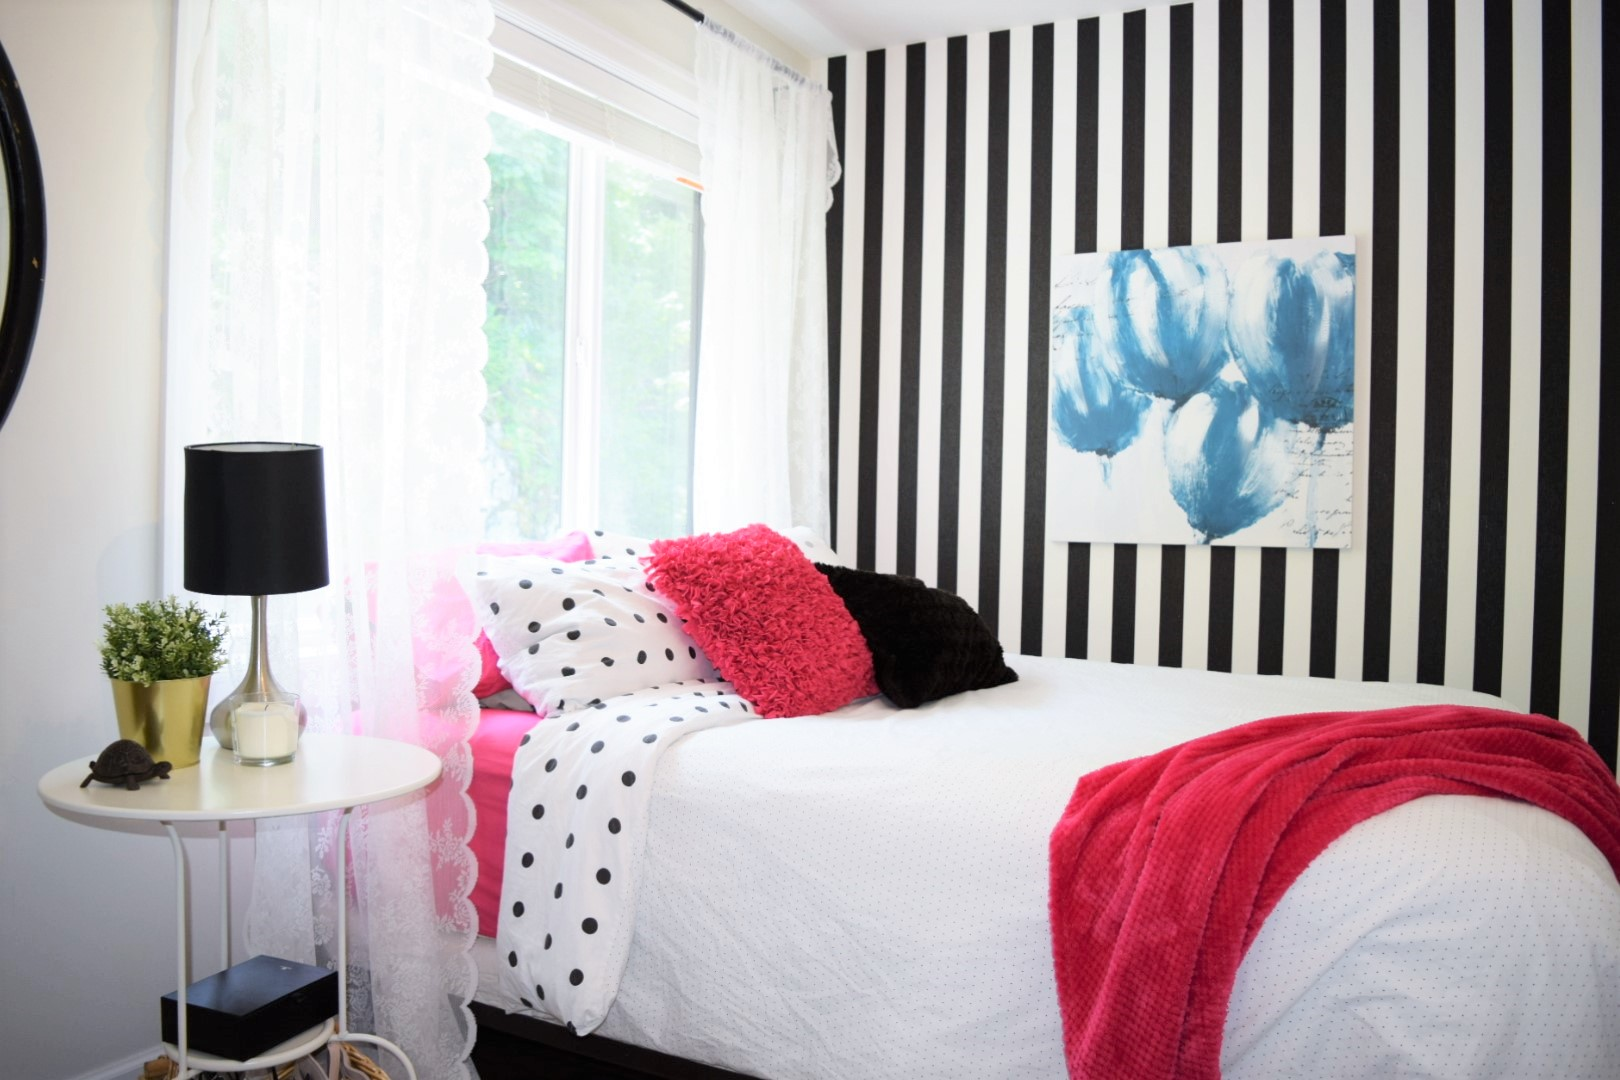 How To Decorate A Vintage Teen Bedroom On A Budget Angela Block Home Design